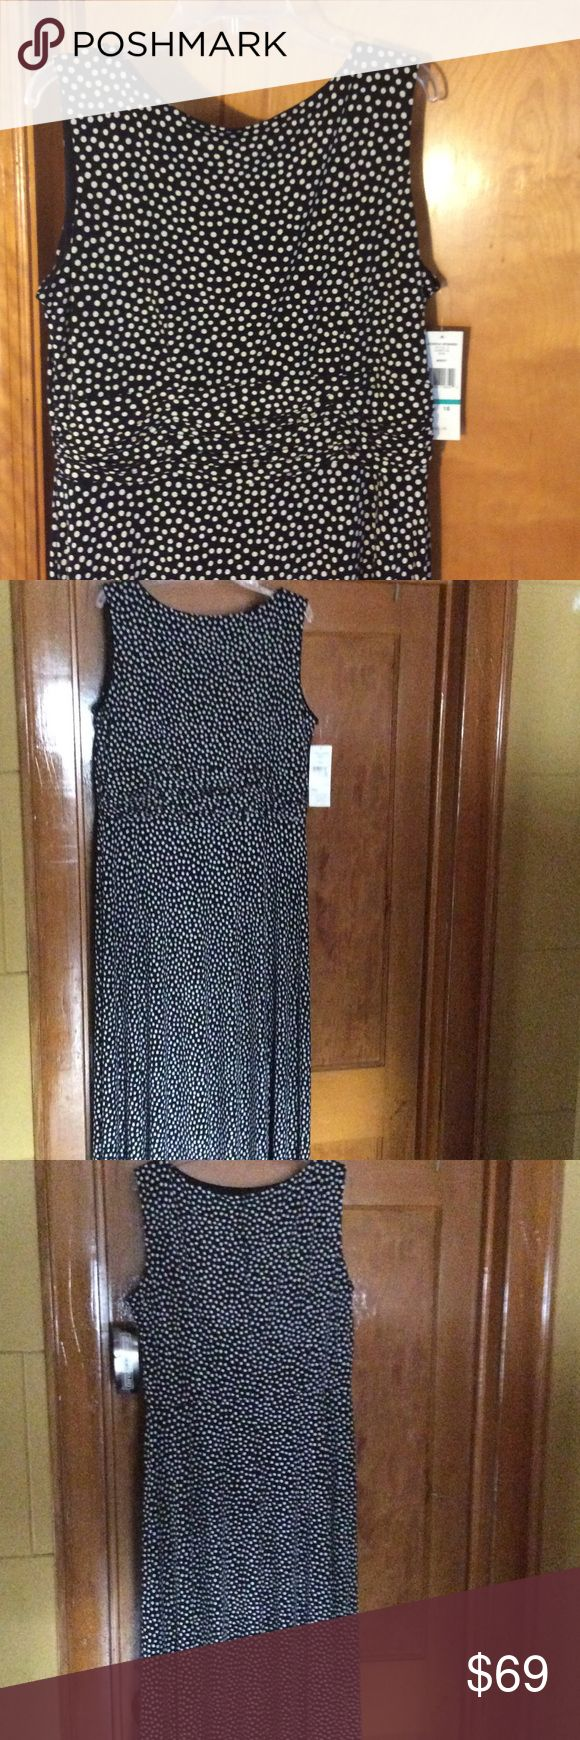 Jessica Howard Polka Dot Maxi Dress Size 16 NWT Jessica Howard Polka Dot Maxi Dress Size 16 NWT, sleeveless, ruched waist, back zipper, lined at top, polyester and spandex, black and white, swing dress. Excellent condition. Macy's. Jessica Howard Dresses Maxi